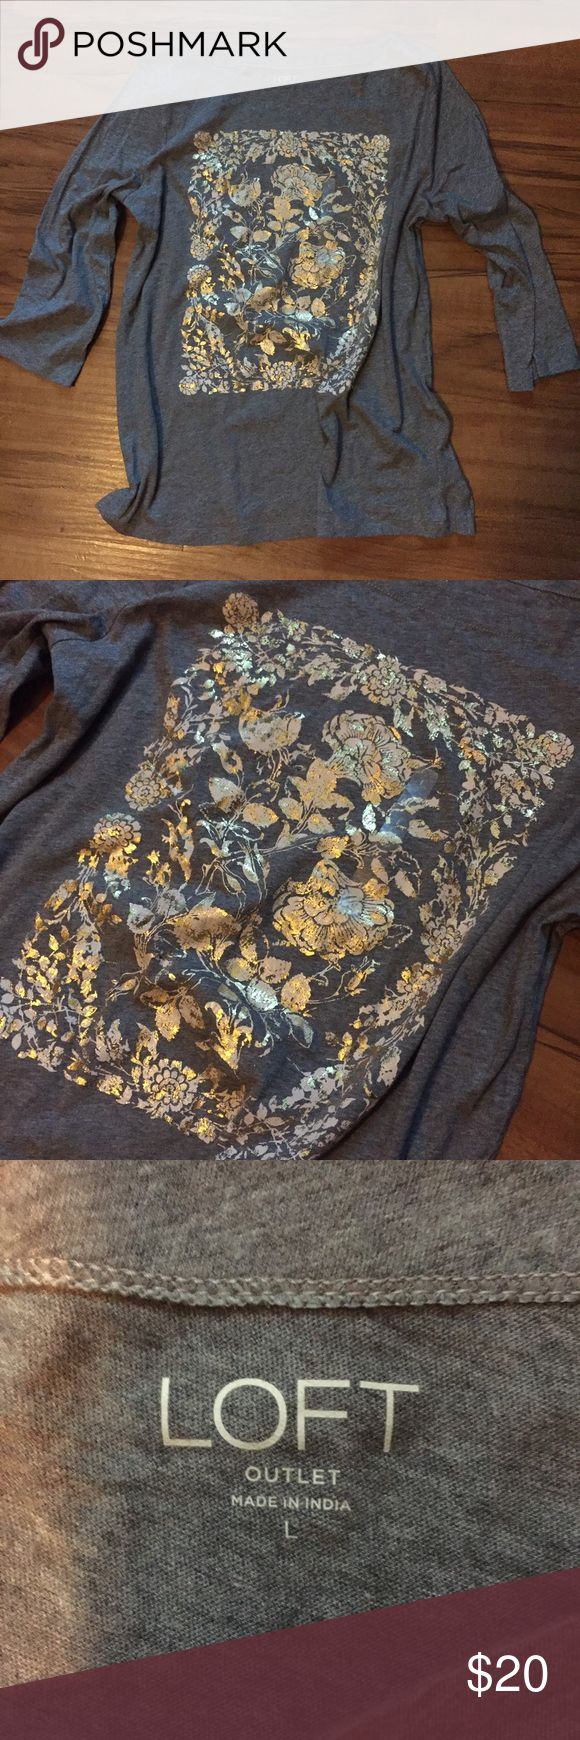 NWT Ann Taylor LOFT Outlet Gray Top, Size Large NWT Ann Taylor LOFT Outlet Soft Gray Top, Size Large. Beautiful gold and light pink colored flower accents on the front. 3/4 Sleeve & super Soft material. So comfy! Brand new with tag. LOFT Tops